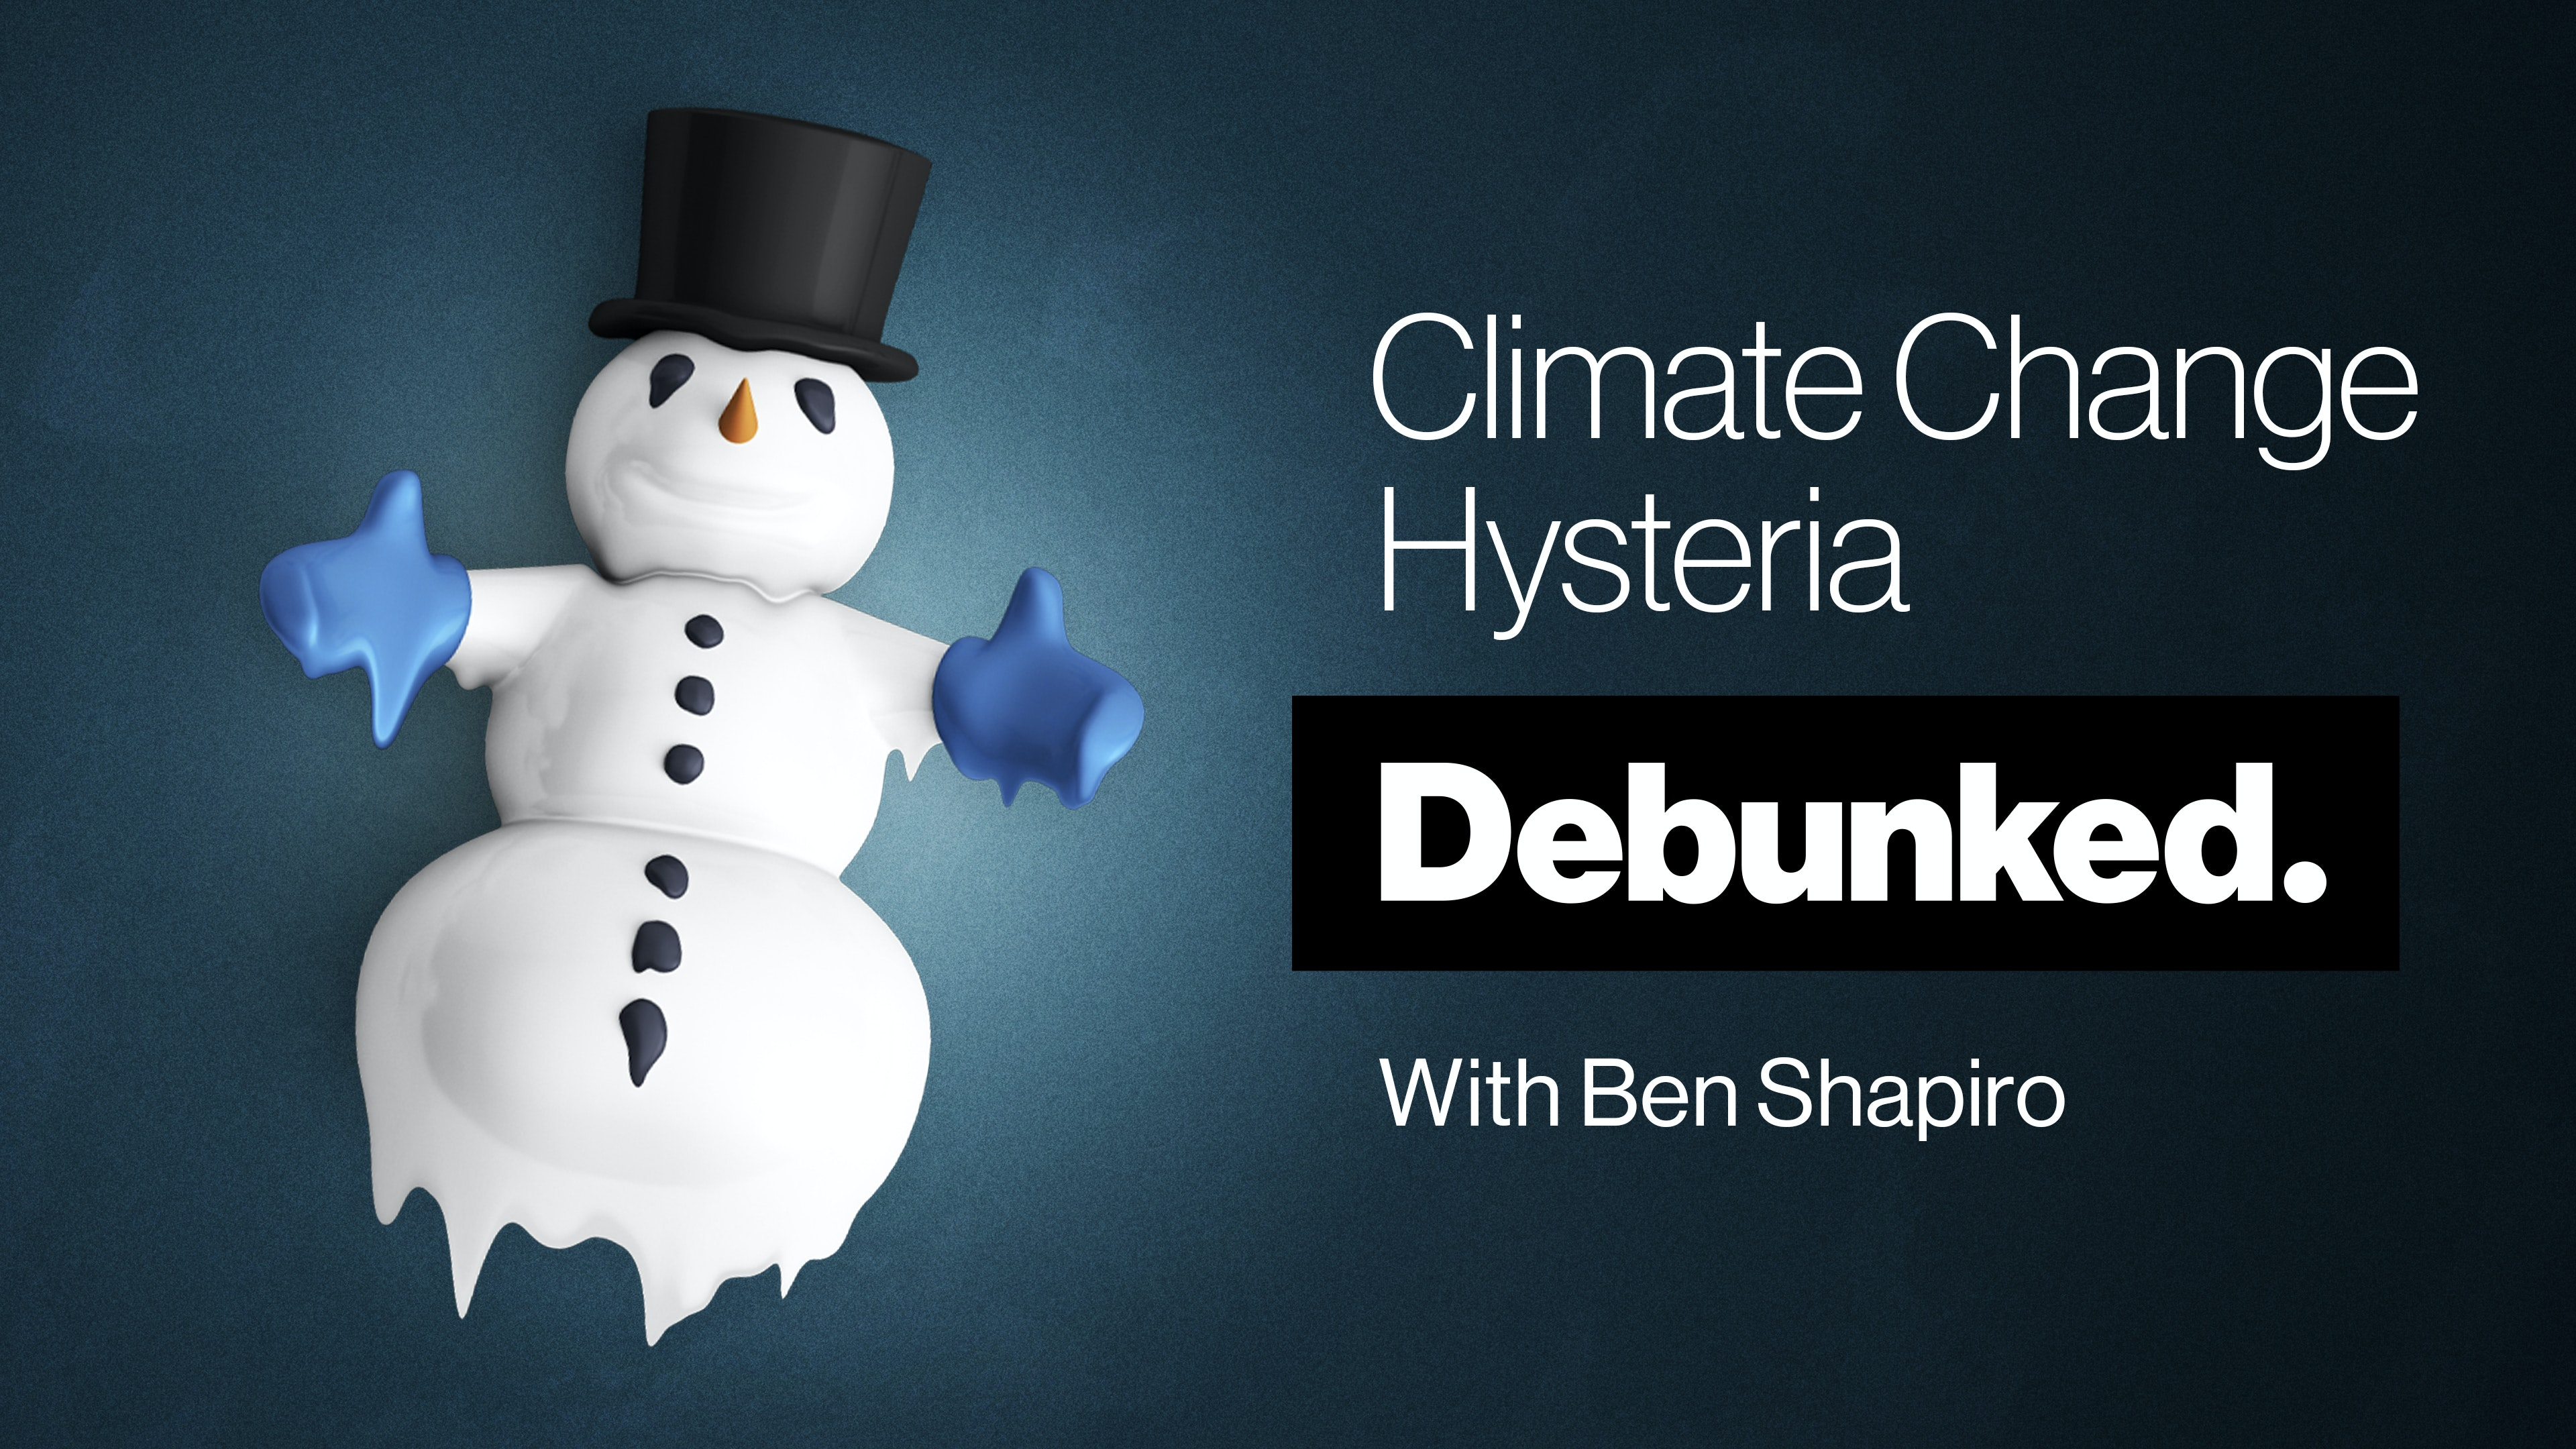 Climate Change Hysteria